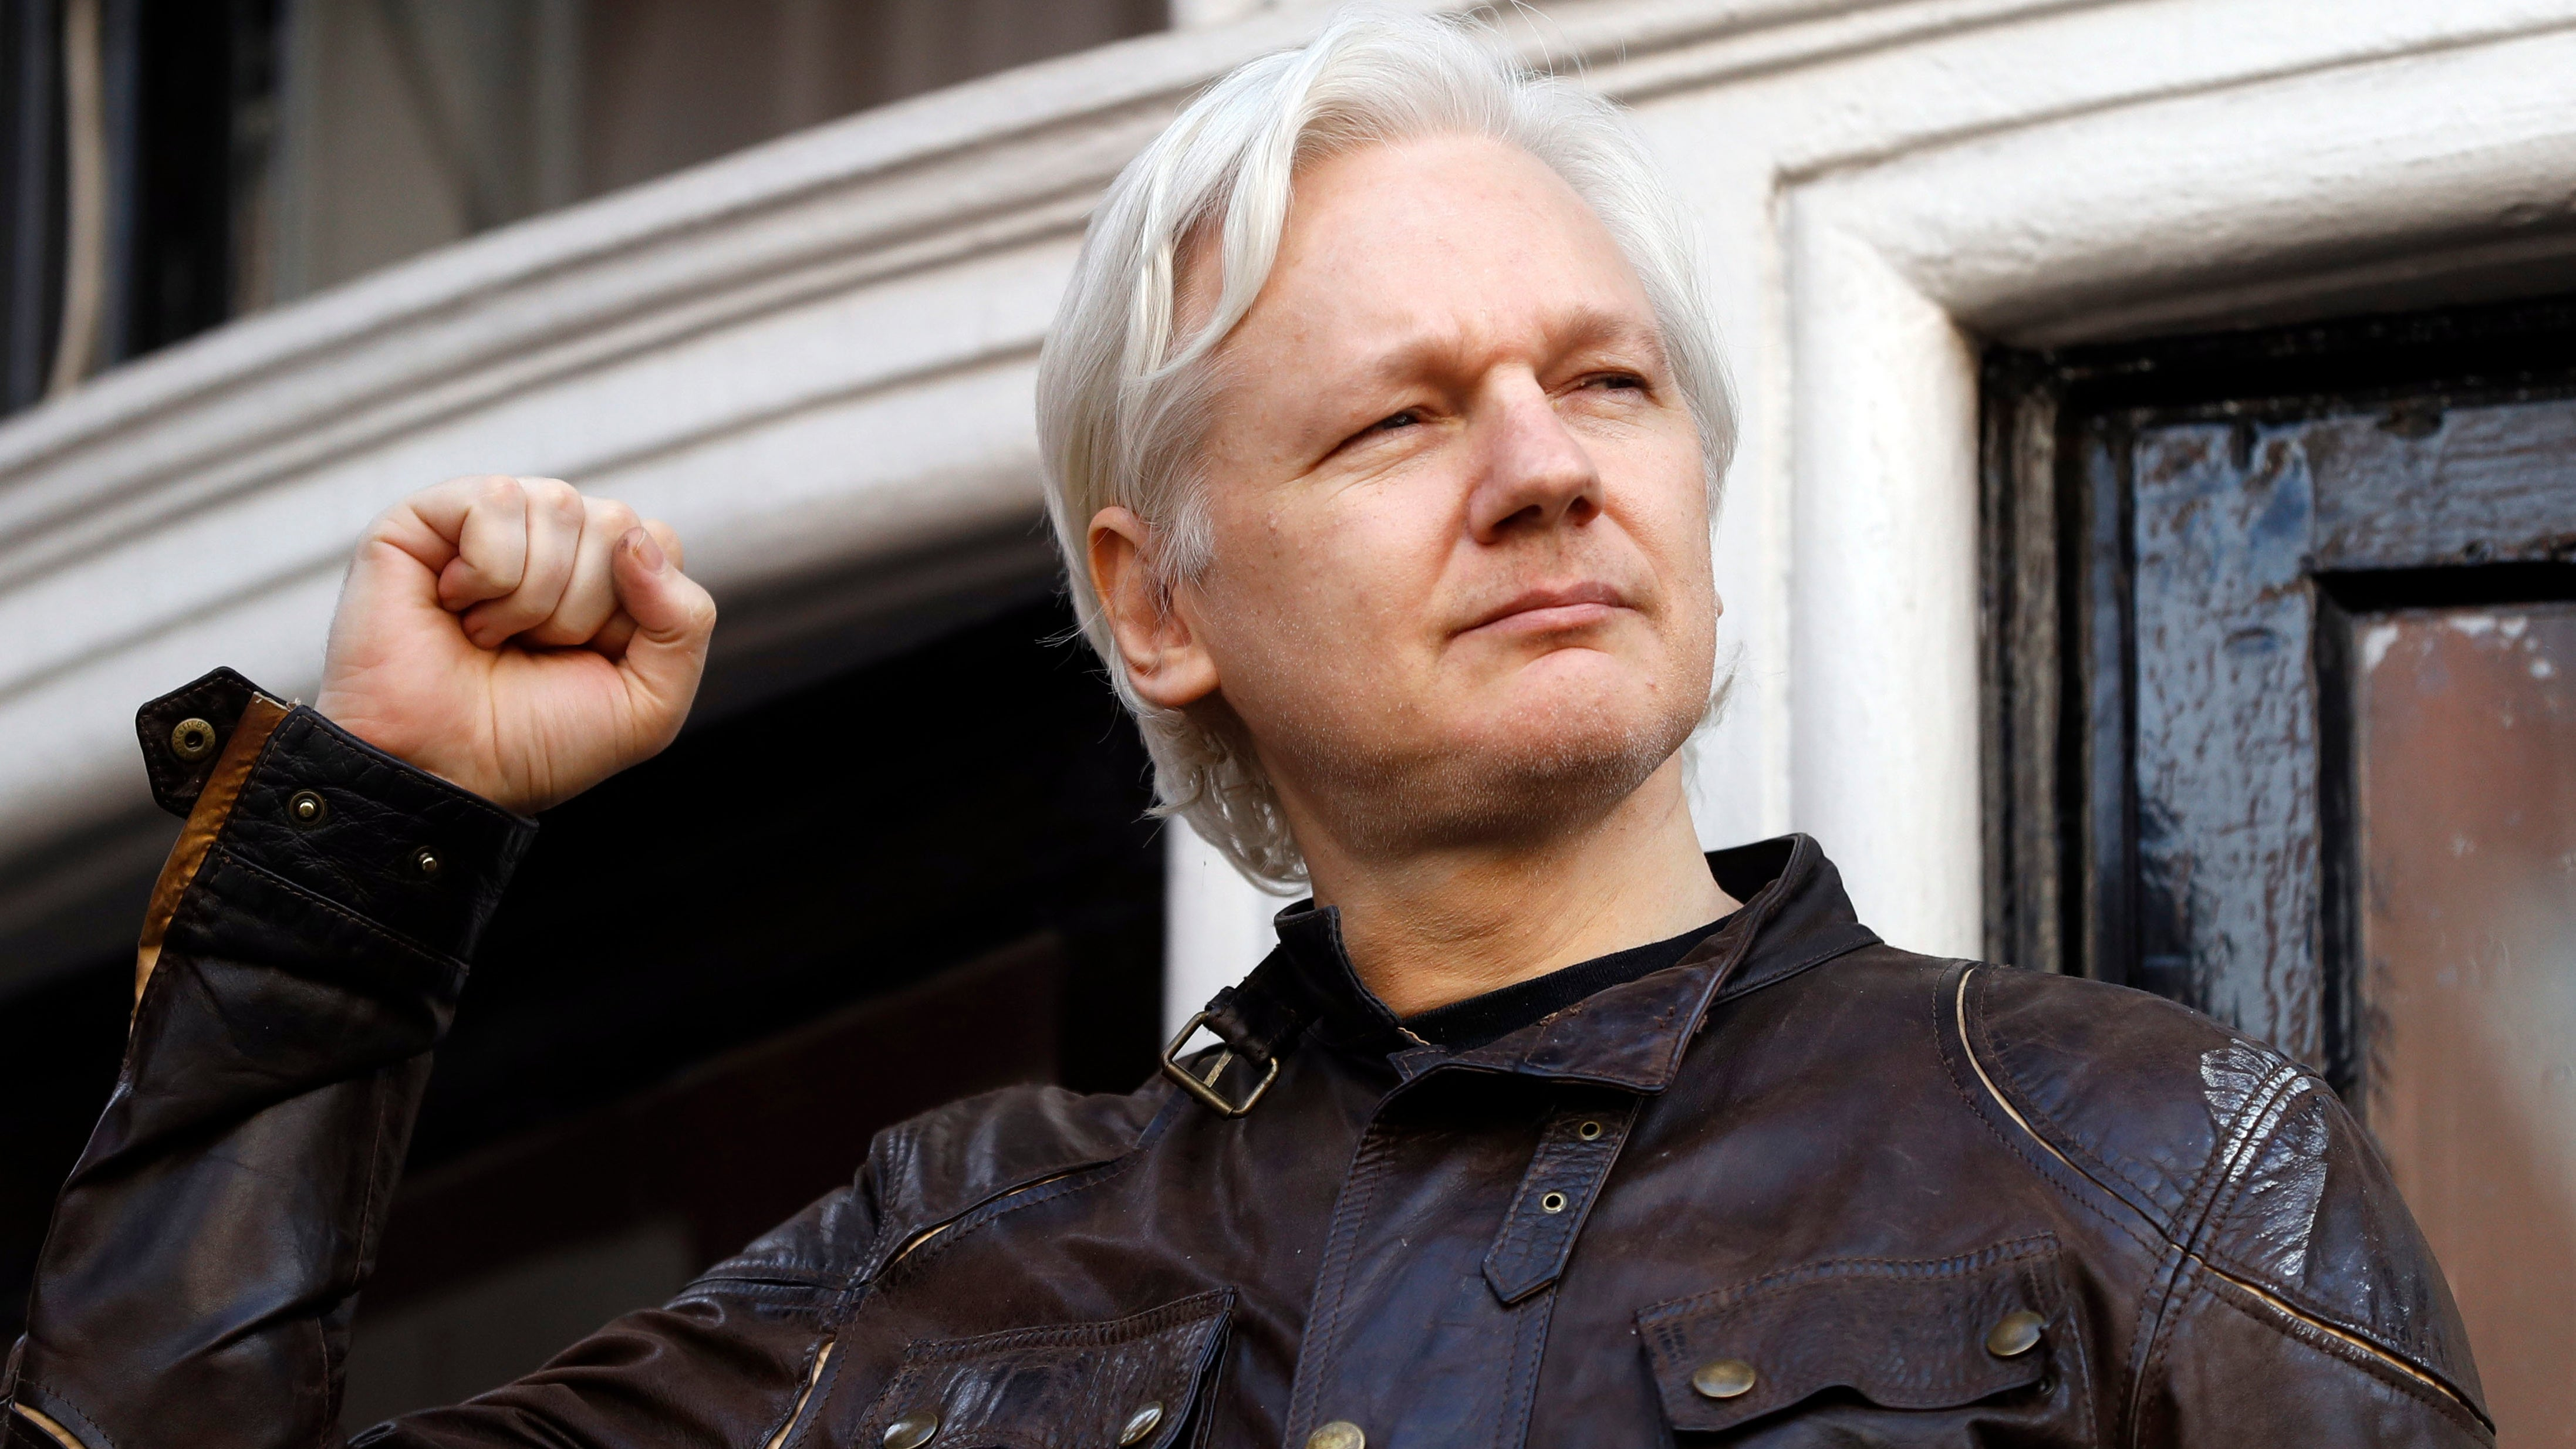 The US Government Has Amassed Terabytes Of Internal WikiLeaks Data